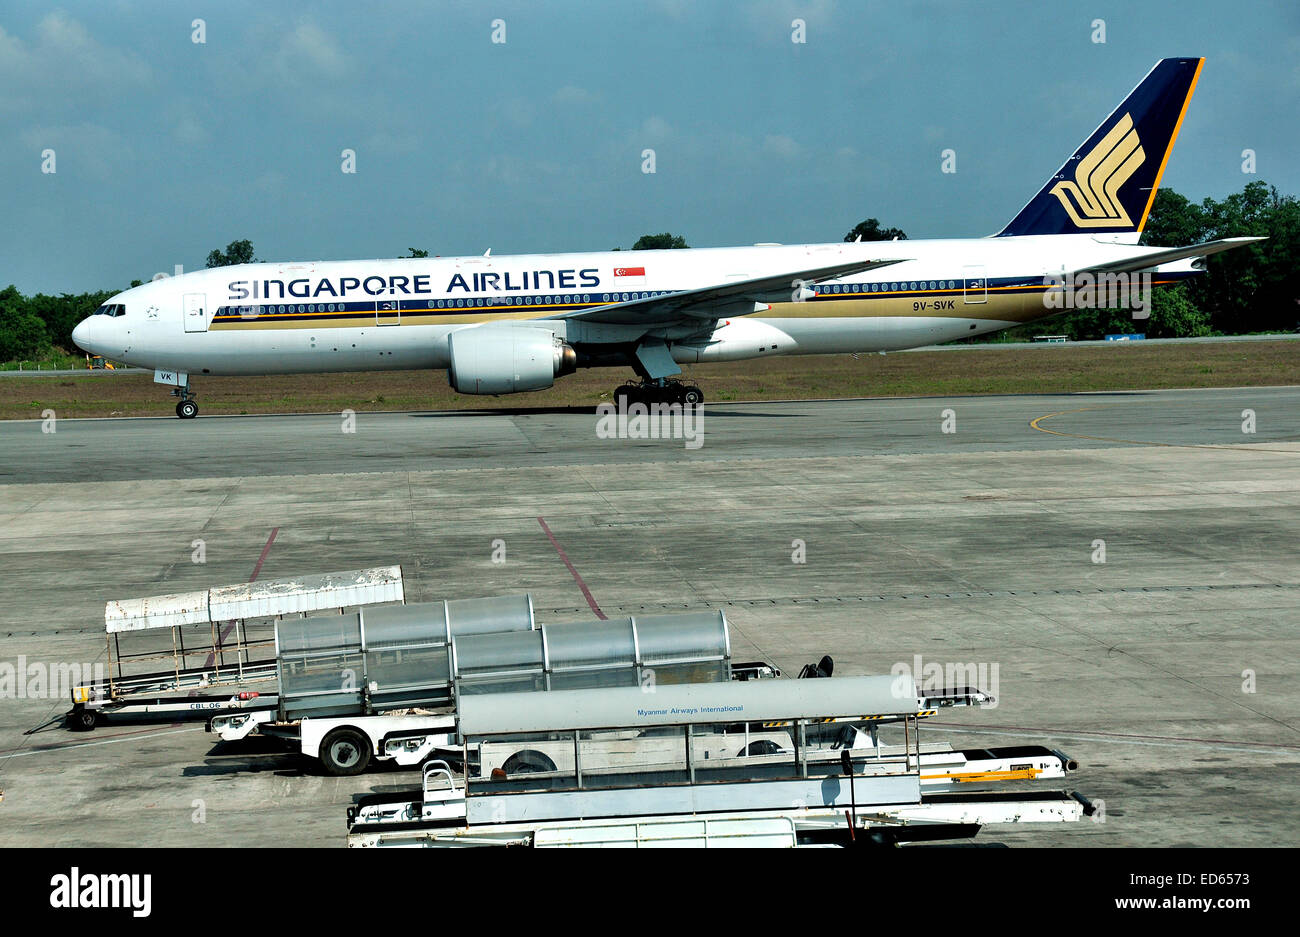 Star alliance group stock photos star alliance group for Singapore airlines sito italiano